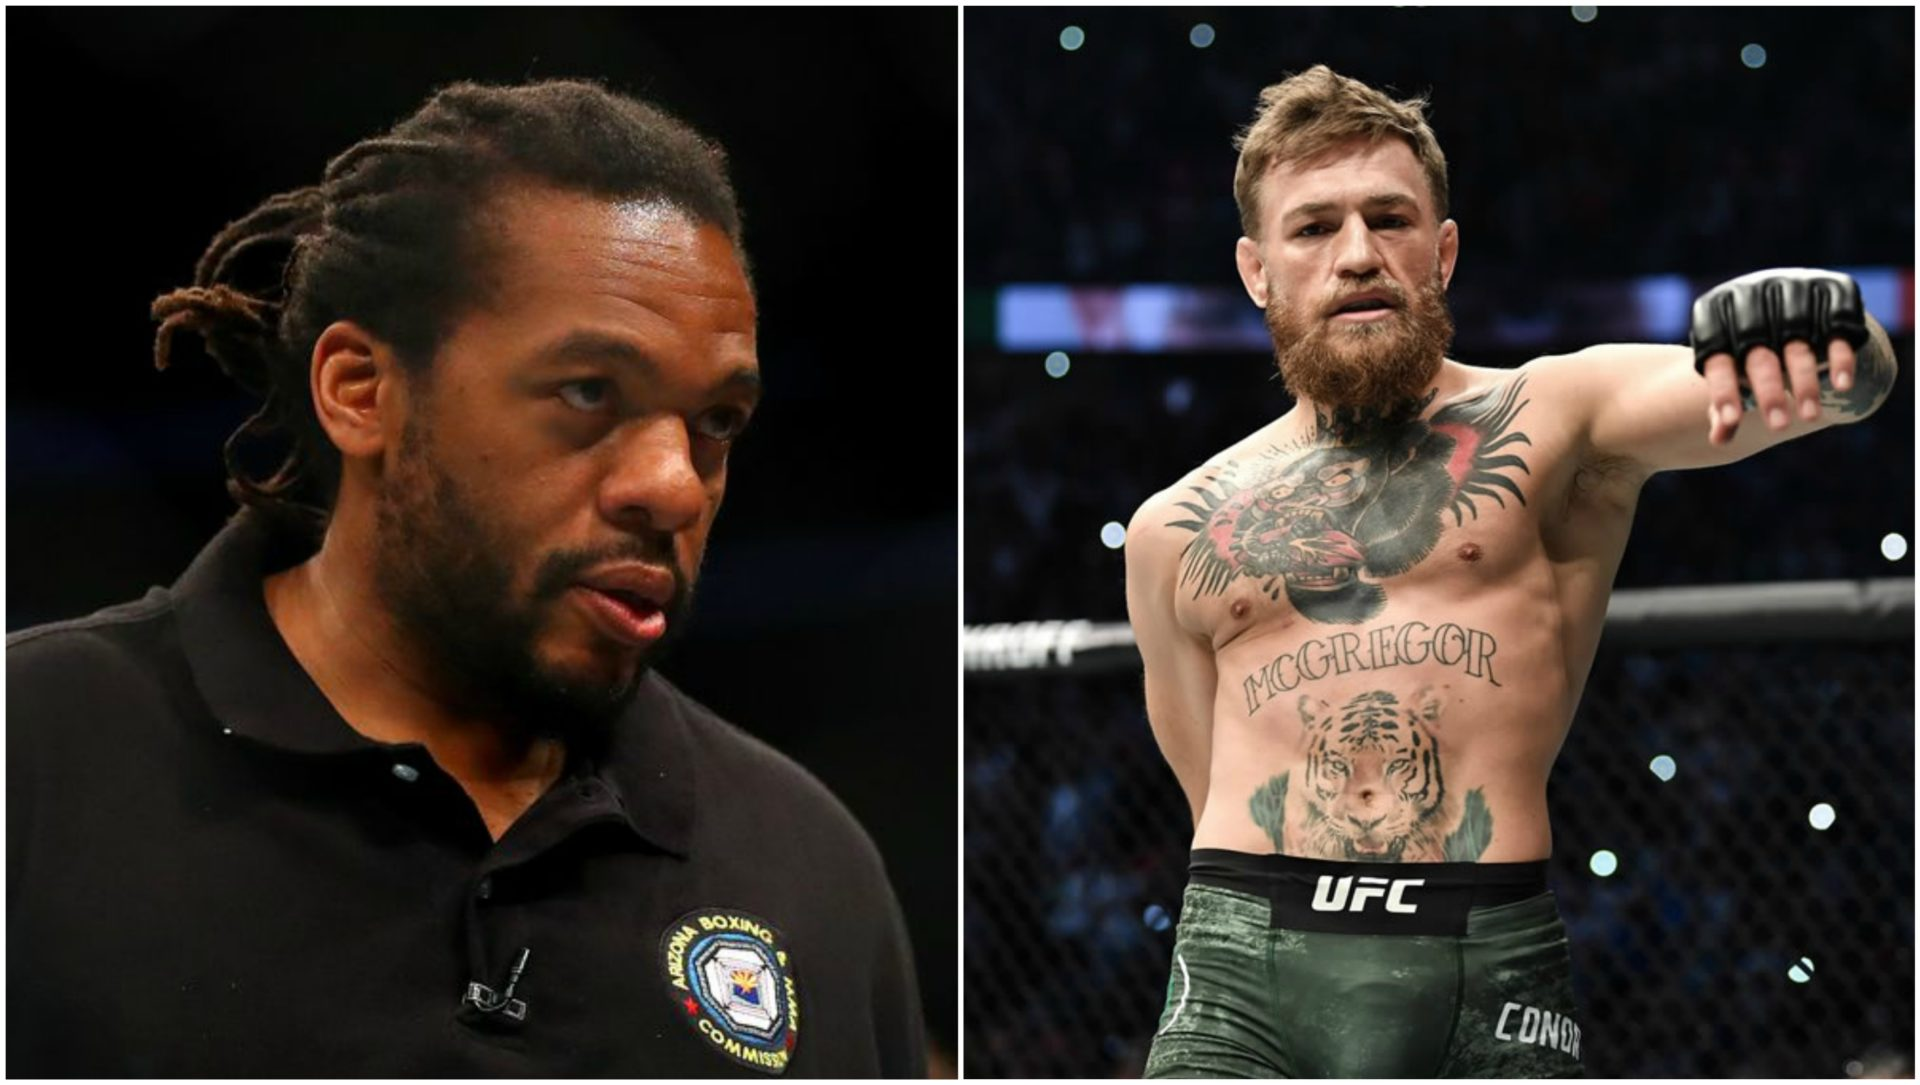 MMA India Exclusive: Herb Dean reveals Conor McGregor is hardest hitting lighter weight fighter he's refereed! - Herb Dean